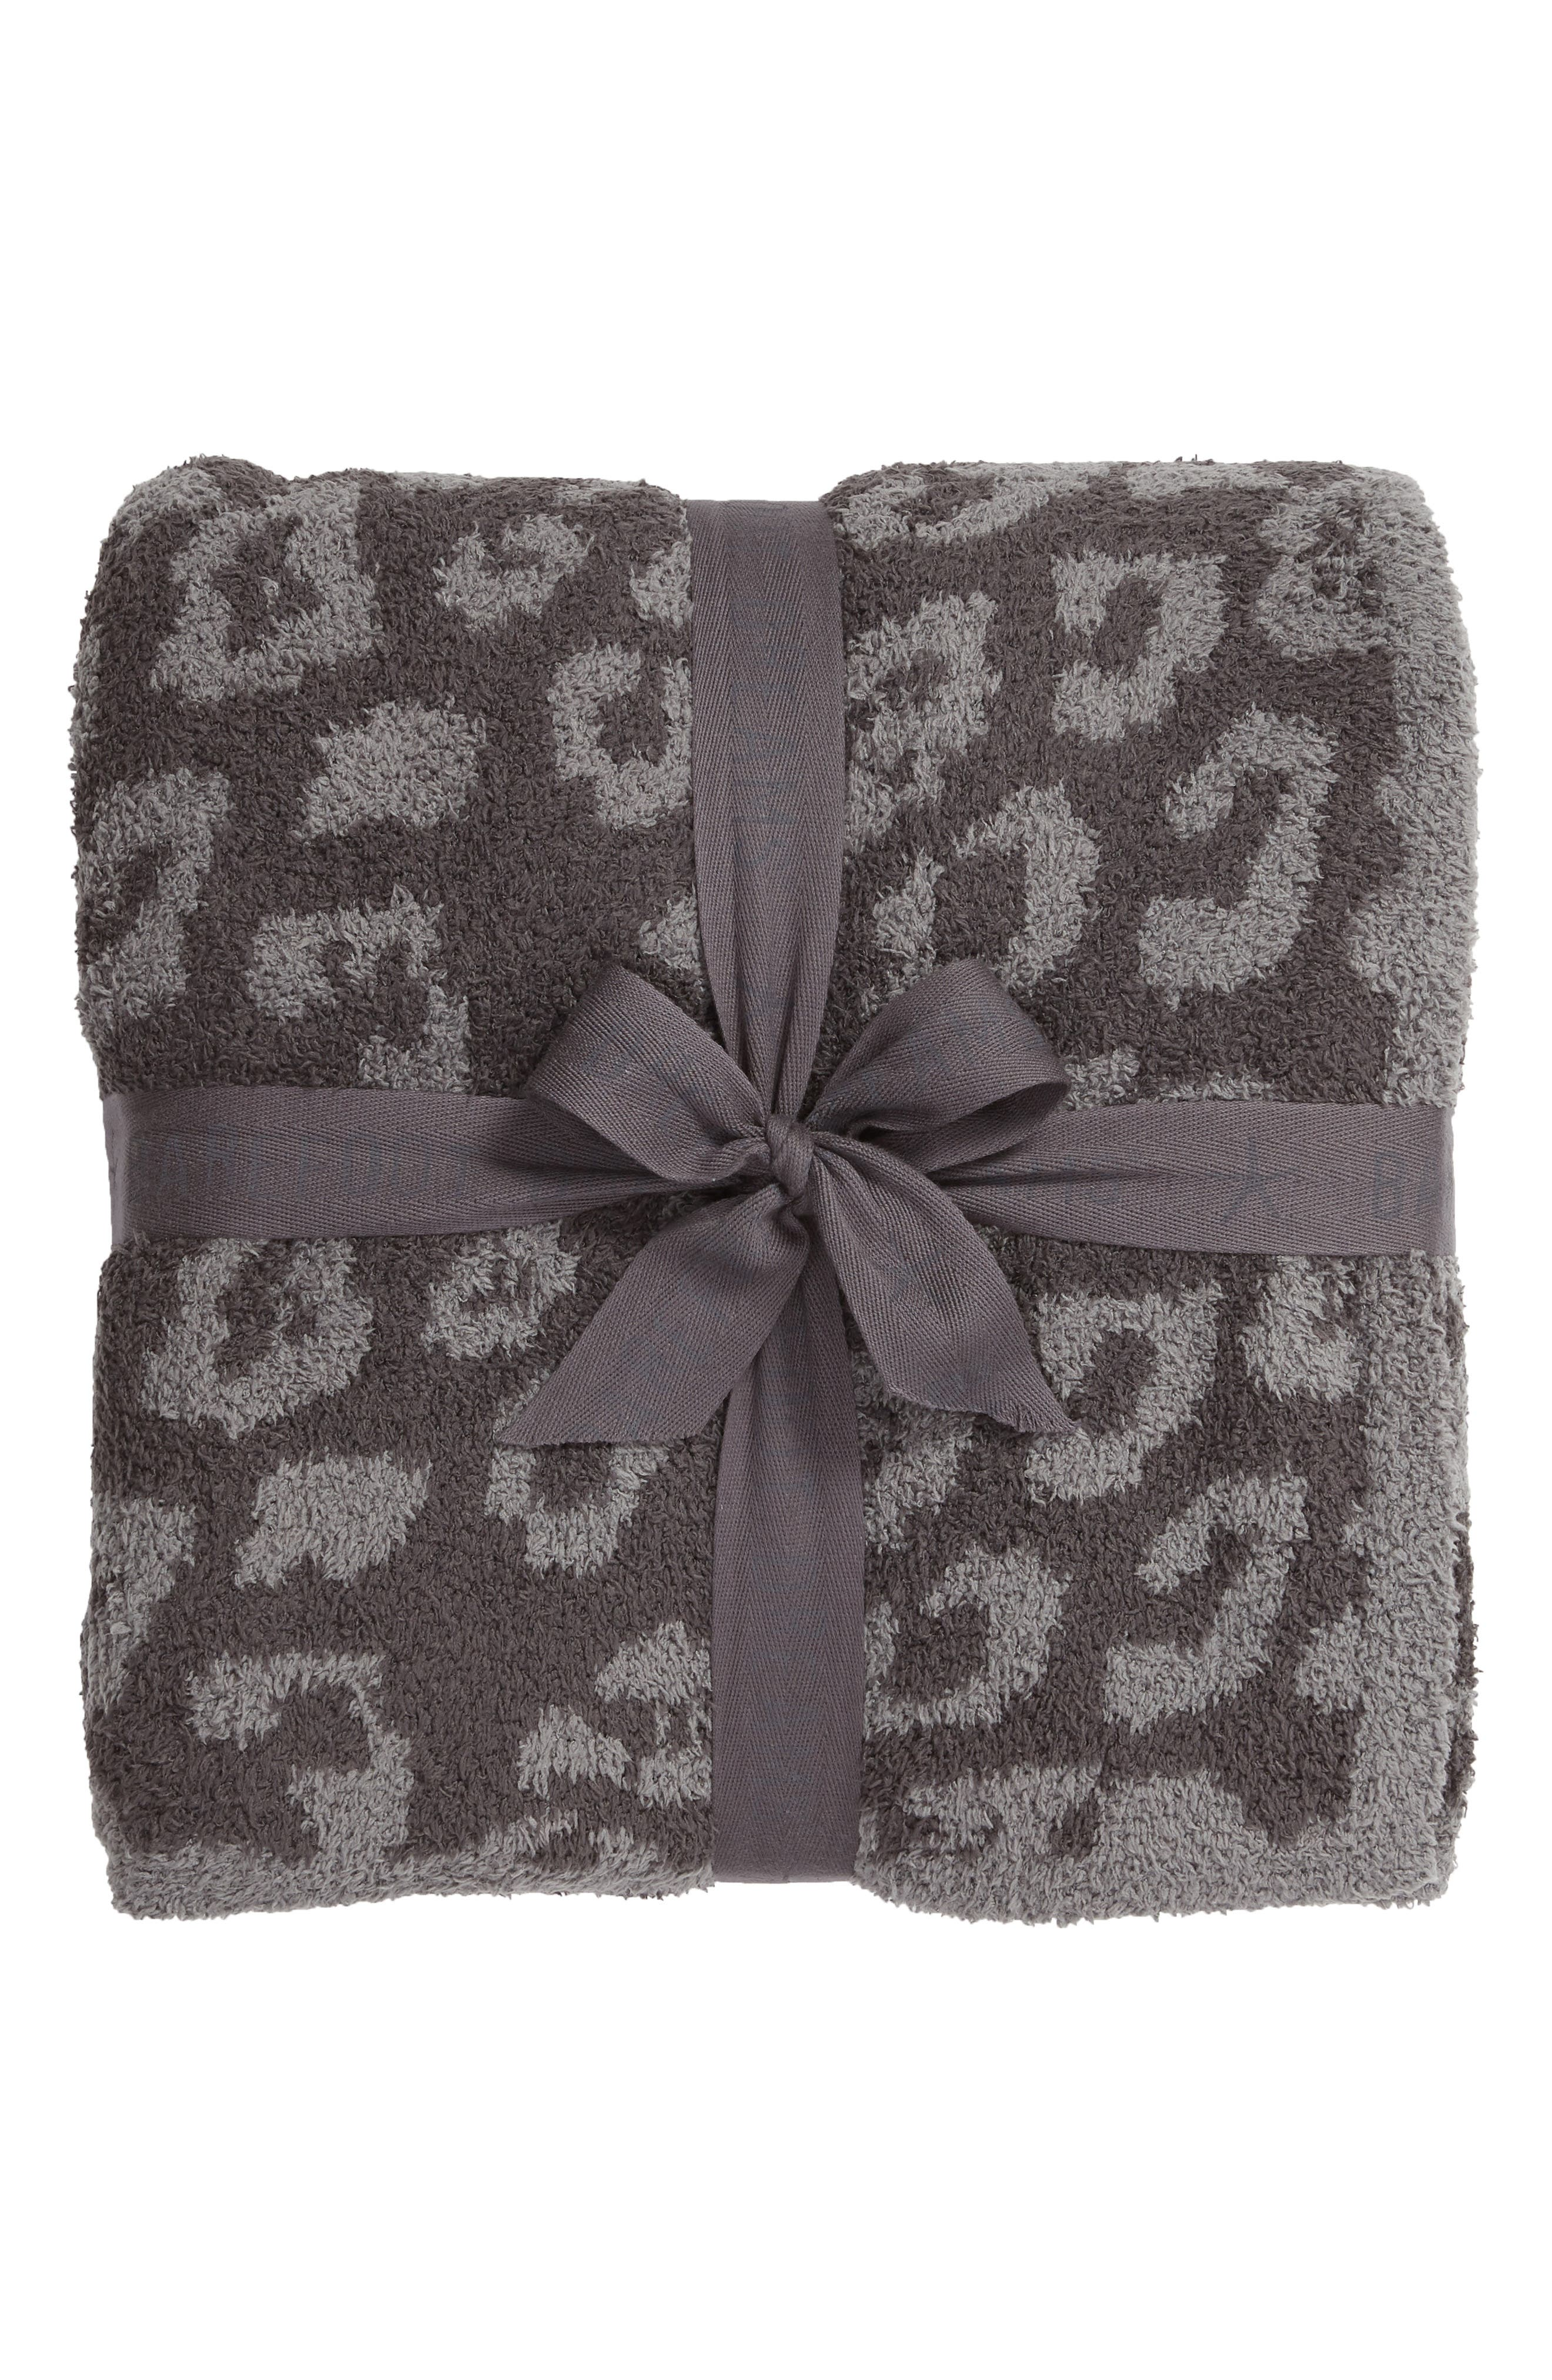 CozyChic 'In the Wild' Throw Blanket, Main, color, GRAPHITE/ CARBON